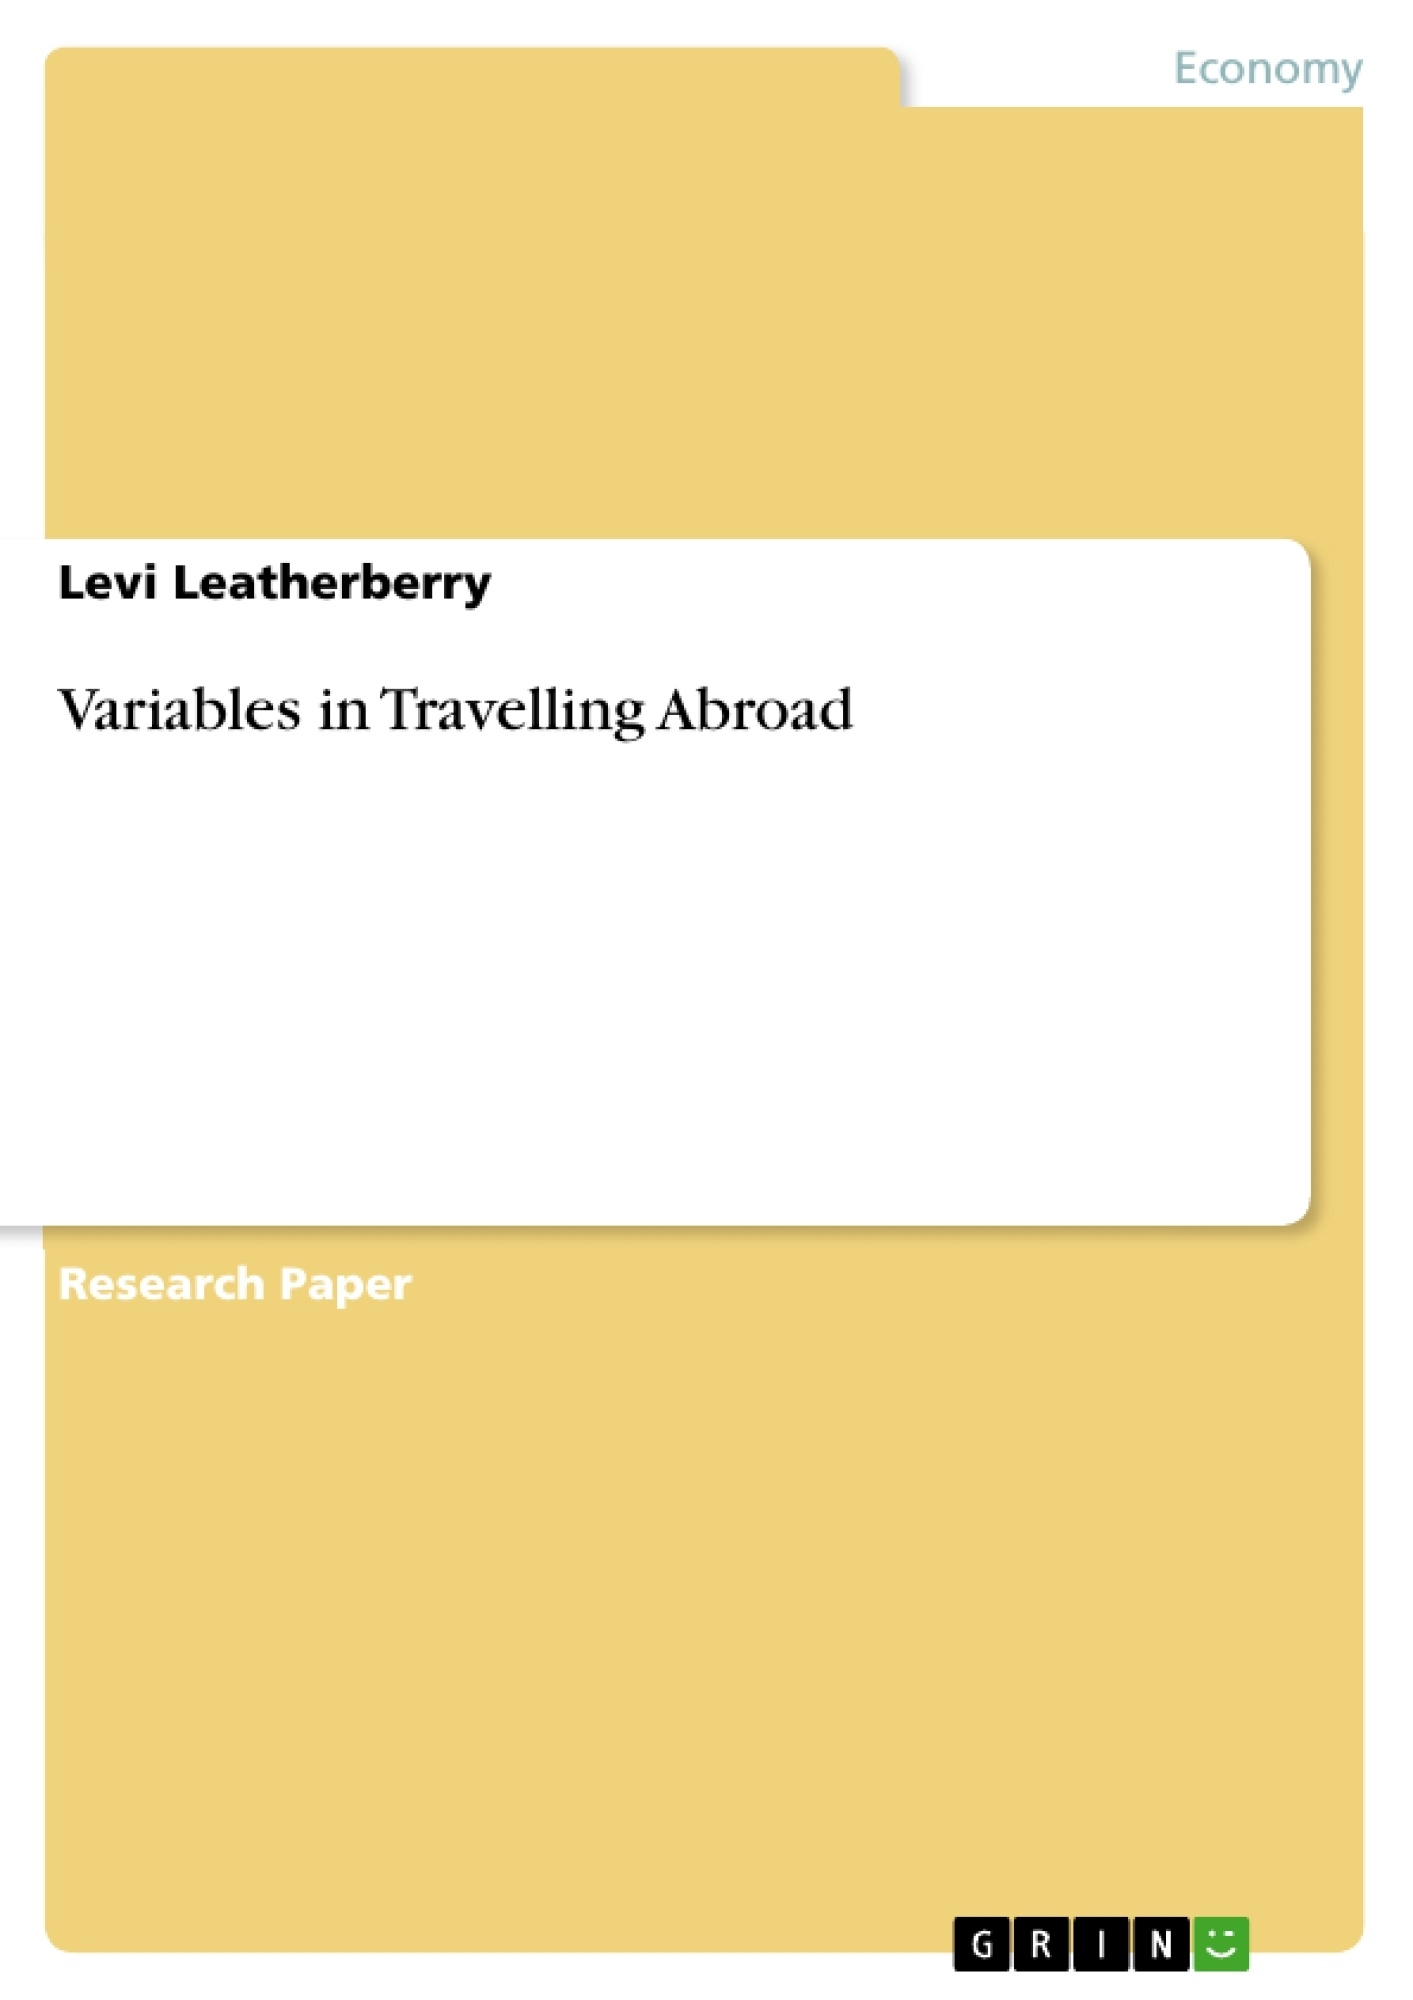 Title: Variables in Travelling Abroad